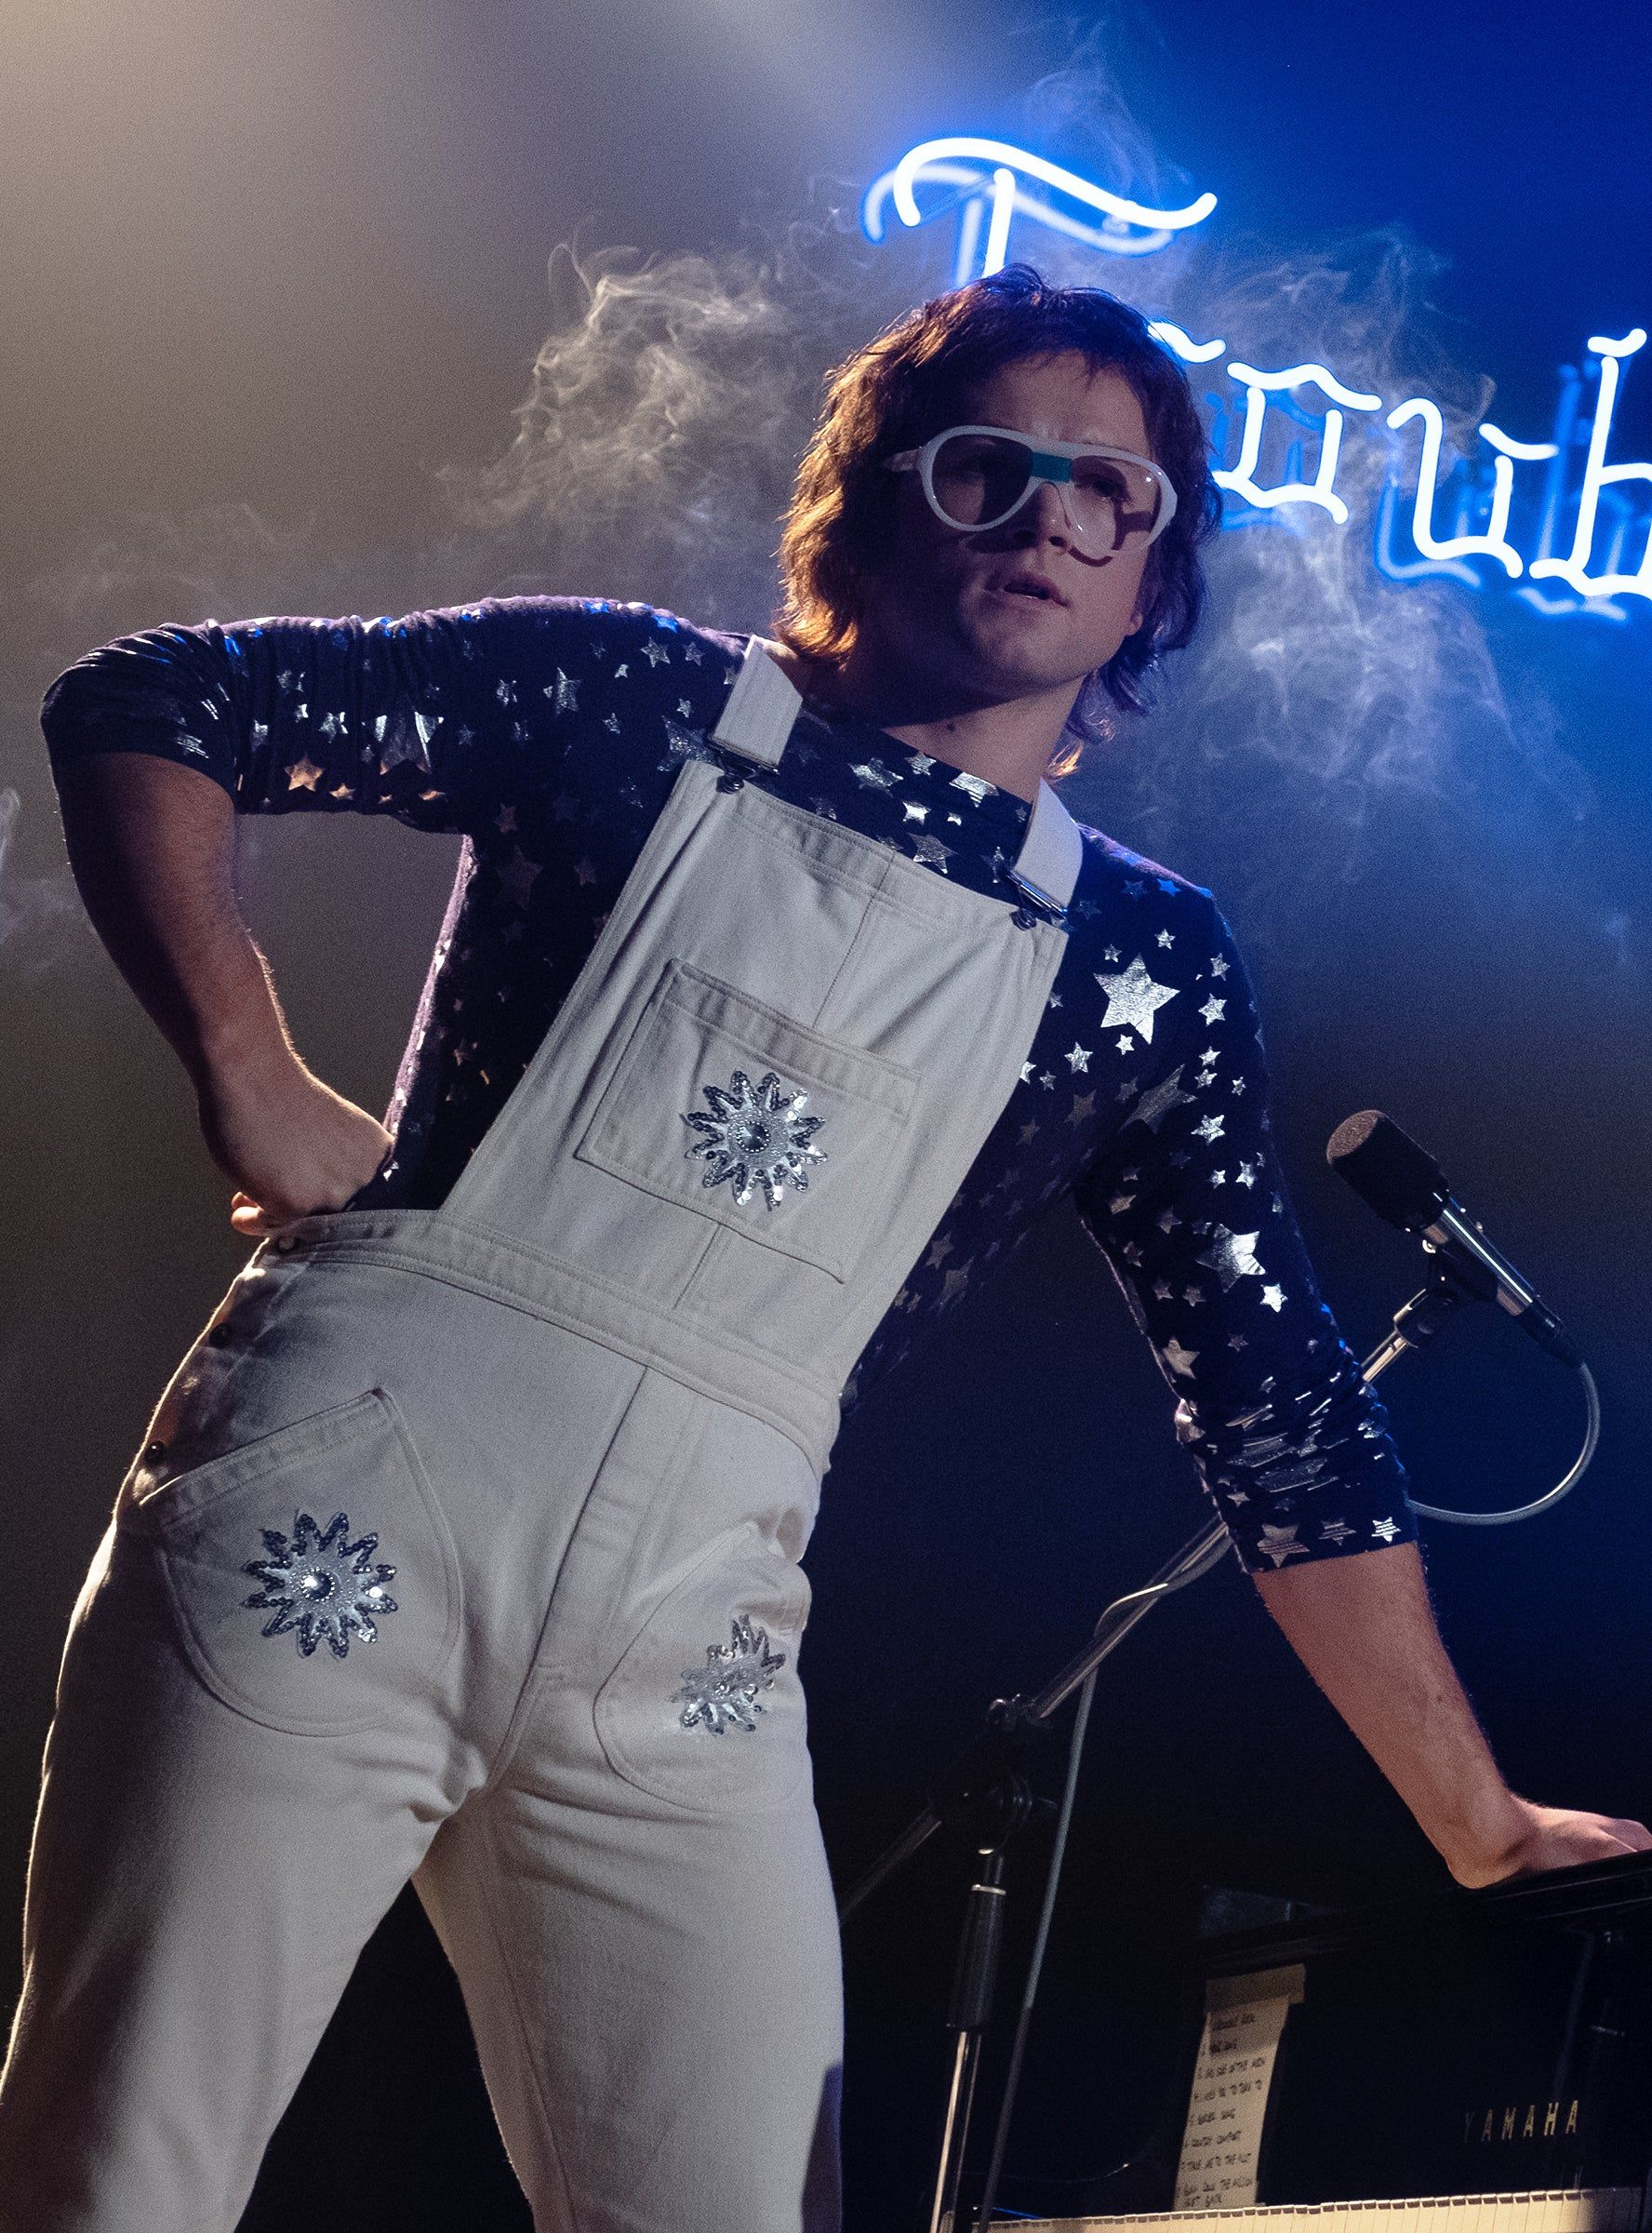 Sparkle This Halloween With These Rocketman-Inspired Costumes